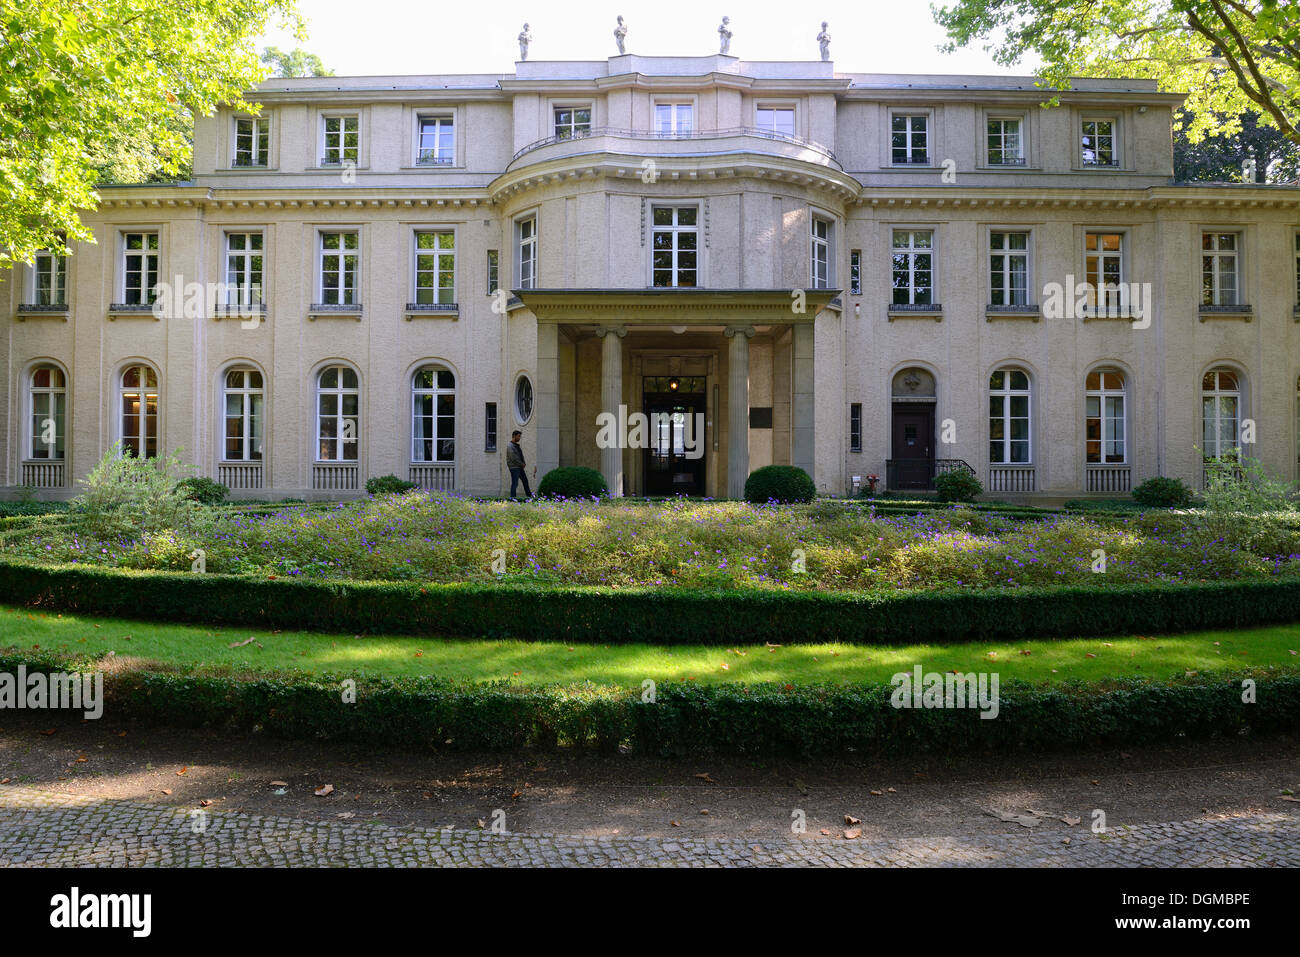 Villa house of the wannsee conference am grossen wannsee wannsee zehlendorf berlin germany